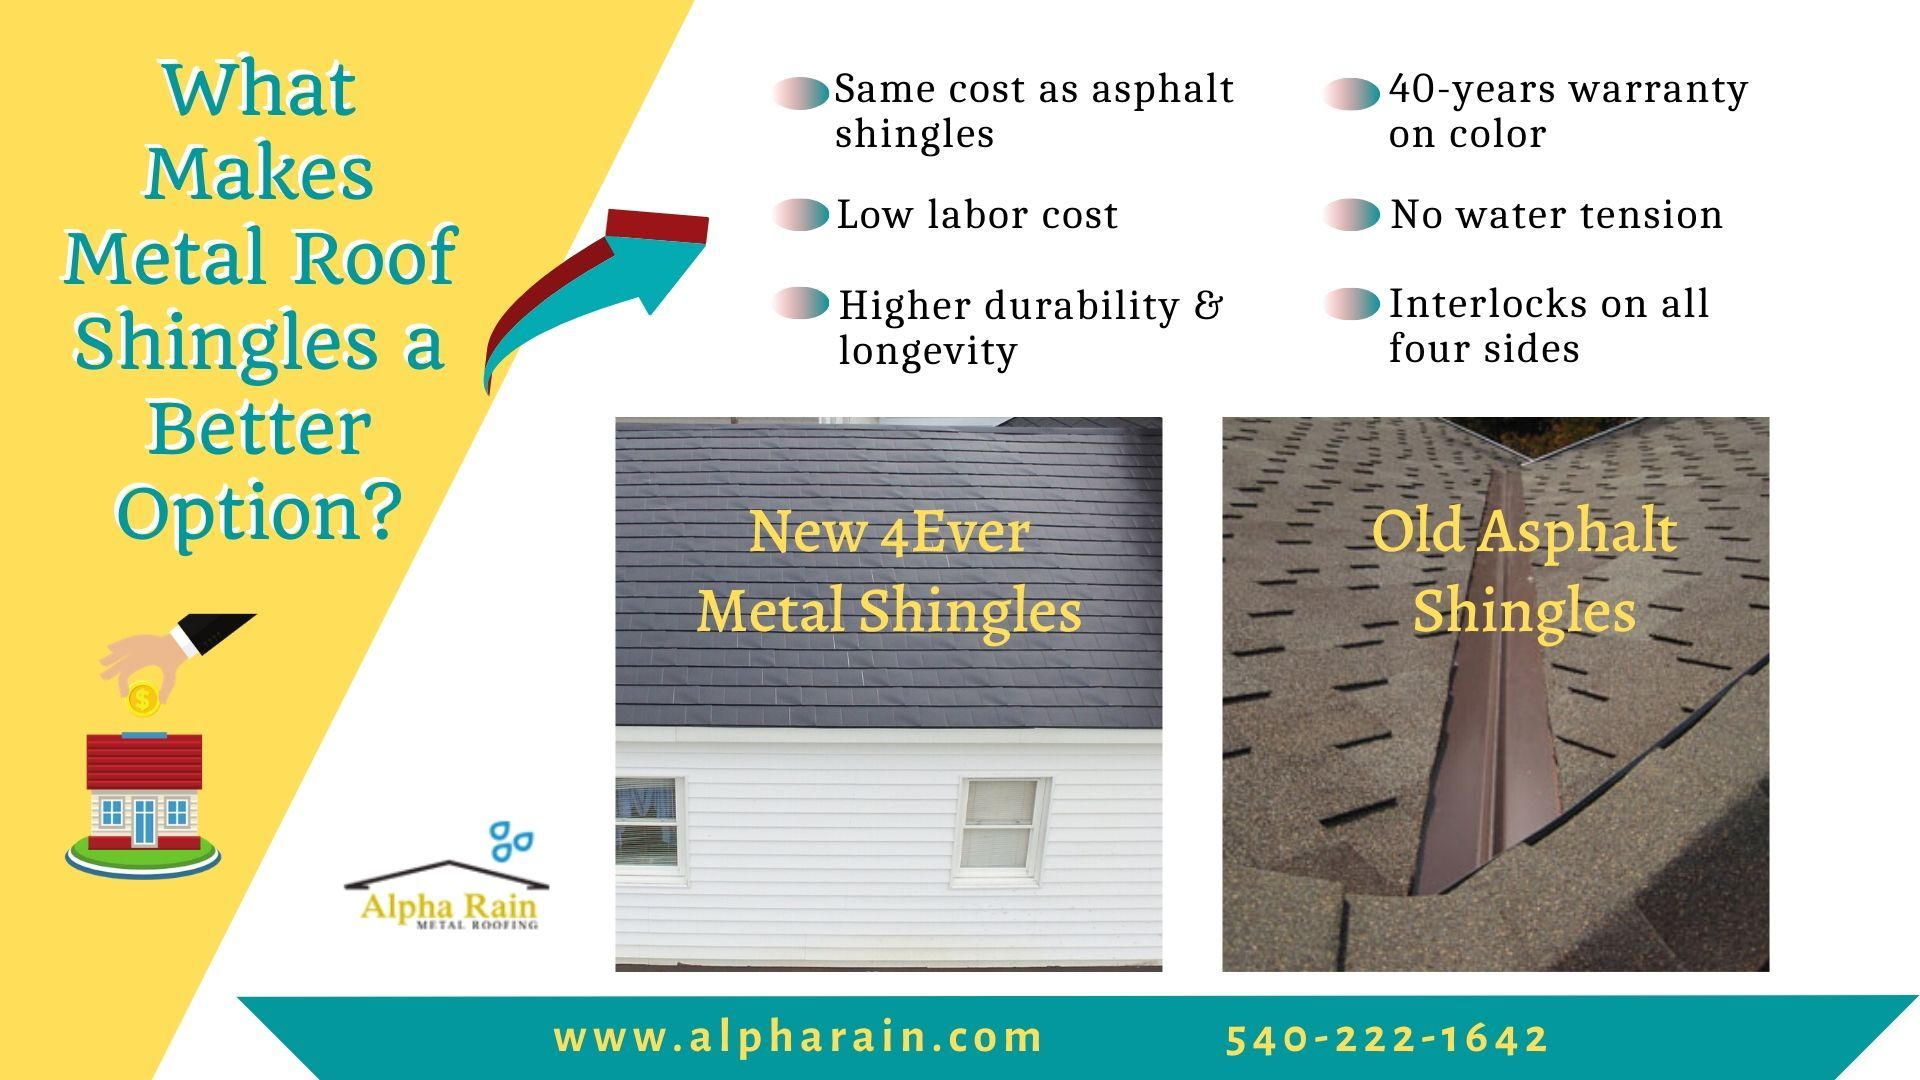 4ever Metal Shingle At Better Price Than Asphalt Shingles In 2020 Metal Shingles Shingling Asphalt Shingles